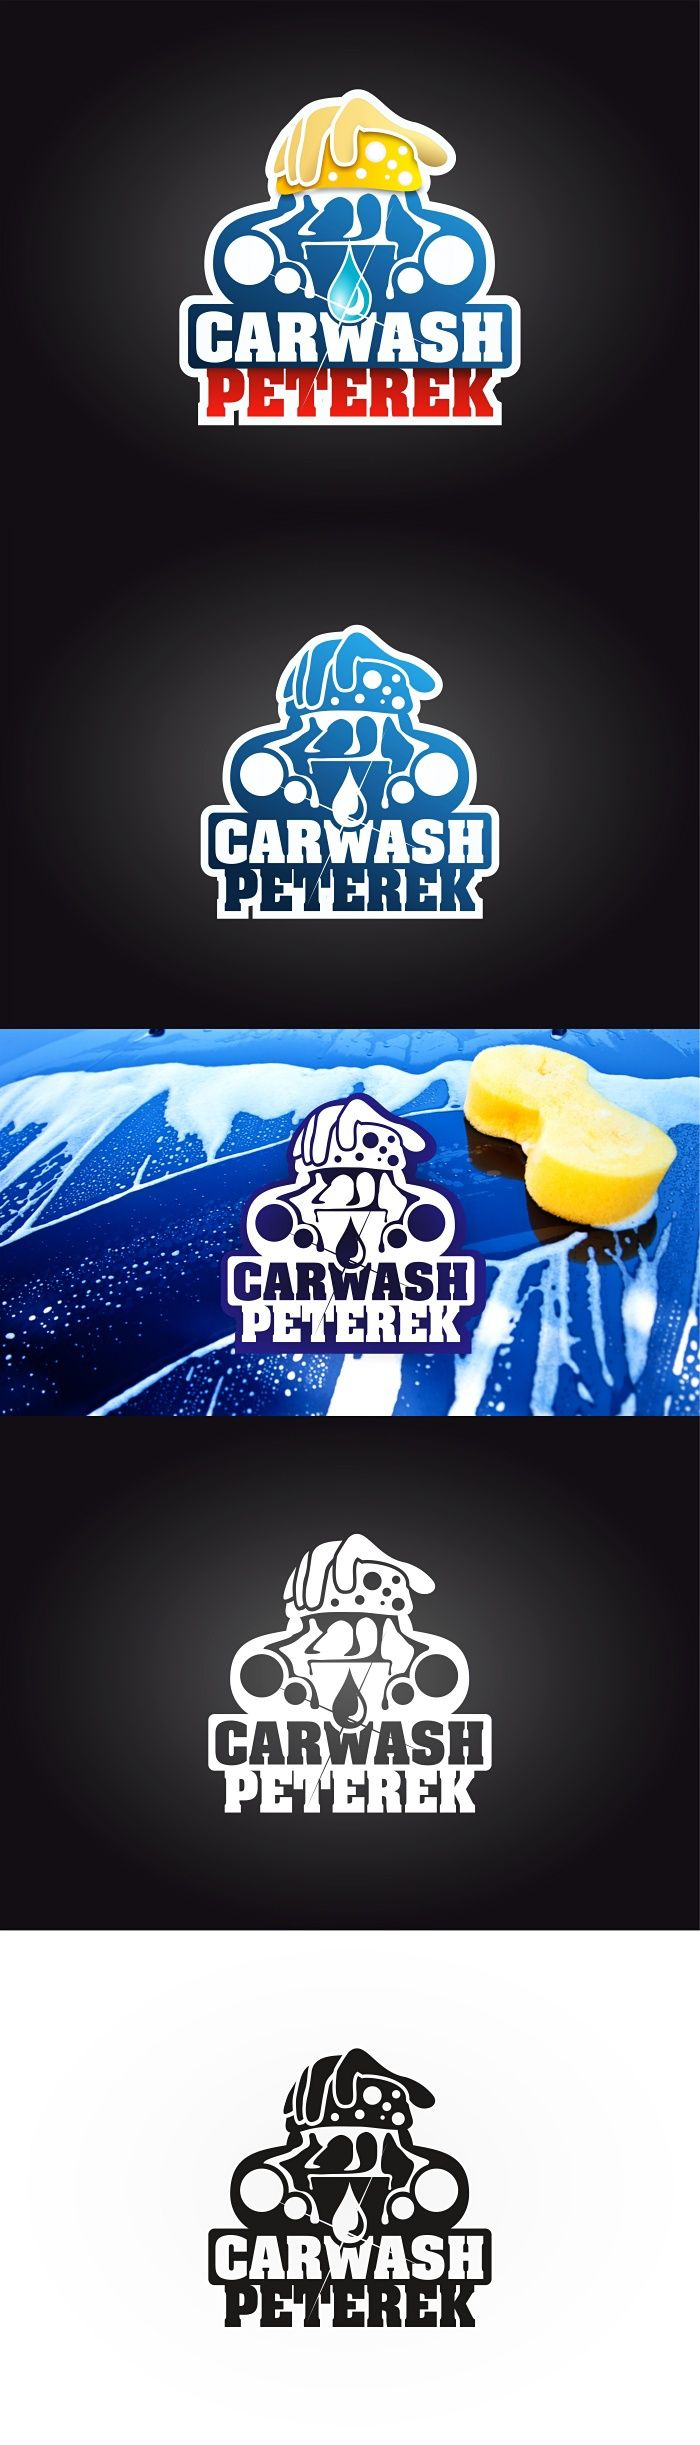 "Podívejte se na můj projekt @Behance: ""Logo for the car wash. Name is Peterek. First version."" https://www.behance.net/gallery/43313741/Logo-for-the-car-wash-Name-is-Peterek-First-version."